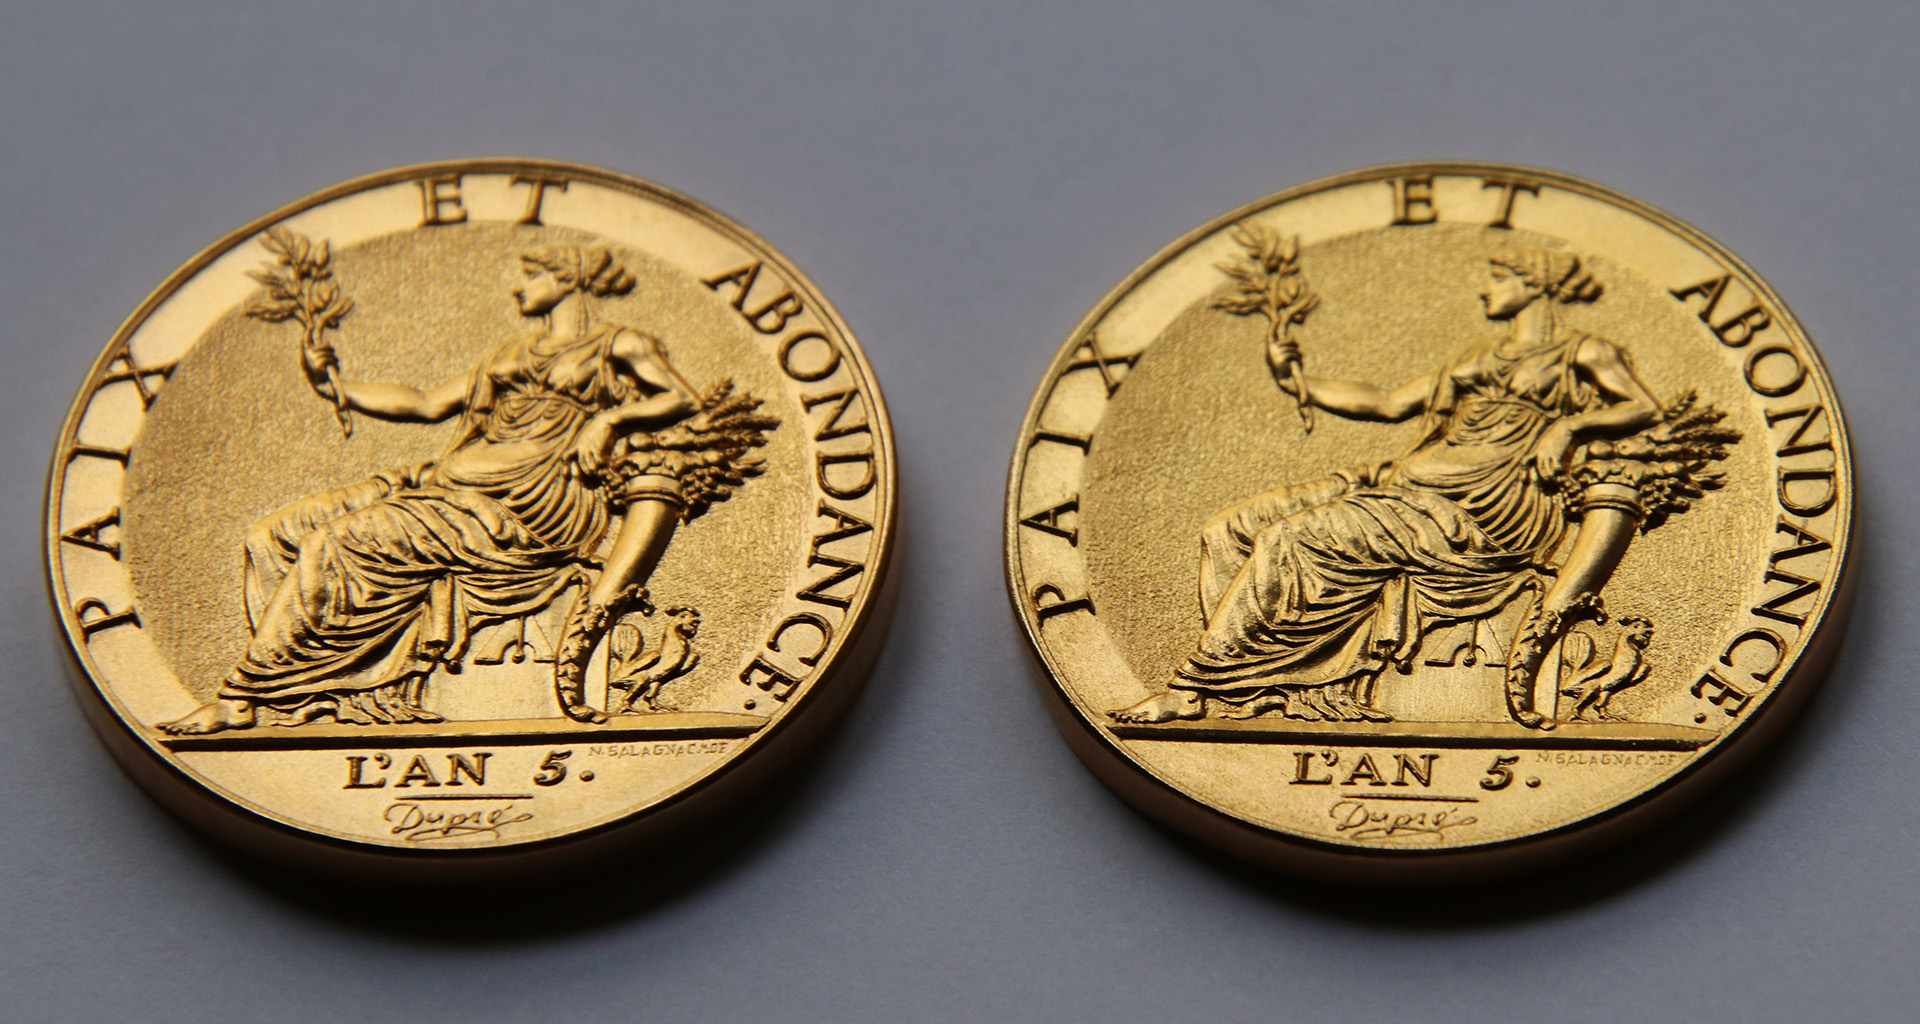 Creation of a medal based on Dupré's 10-gram gold medal that had never been created